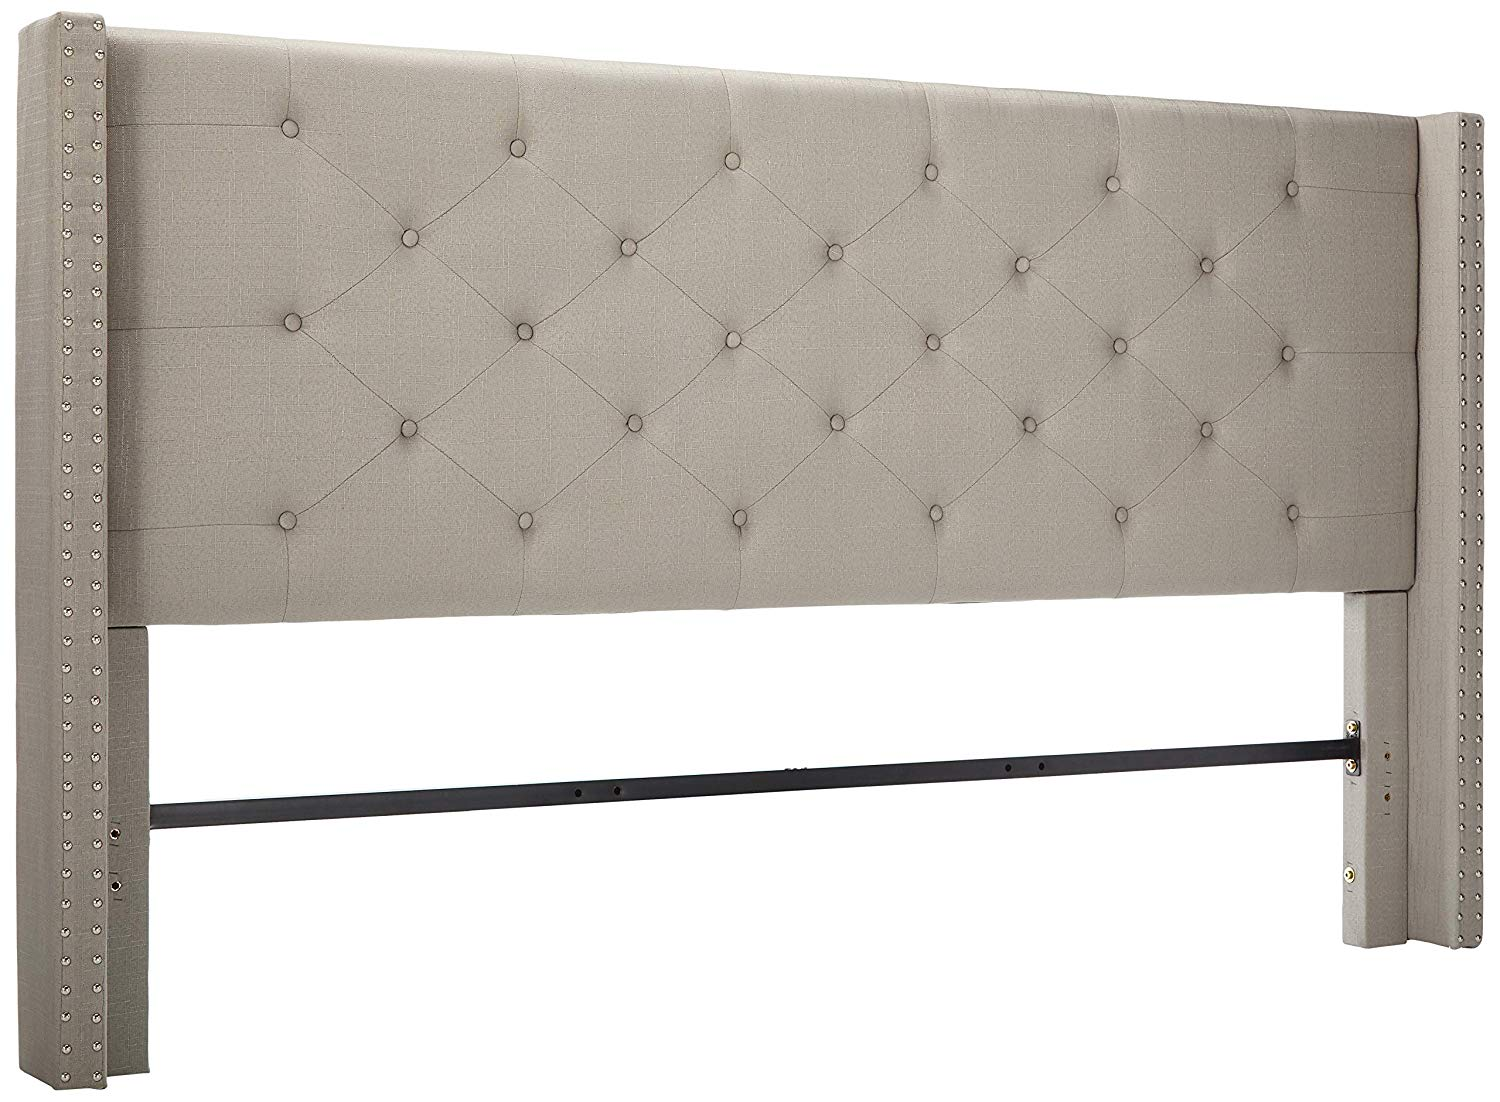 51 inch Tall Headboard by Life Home